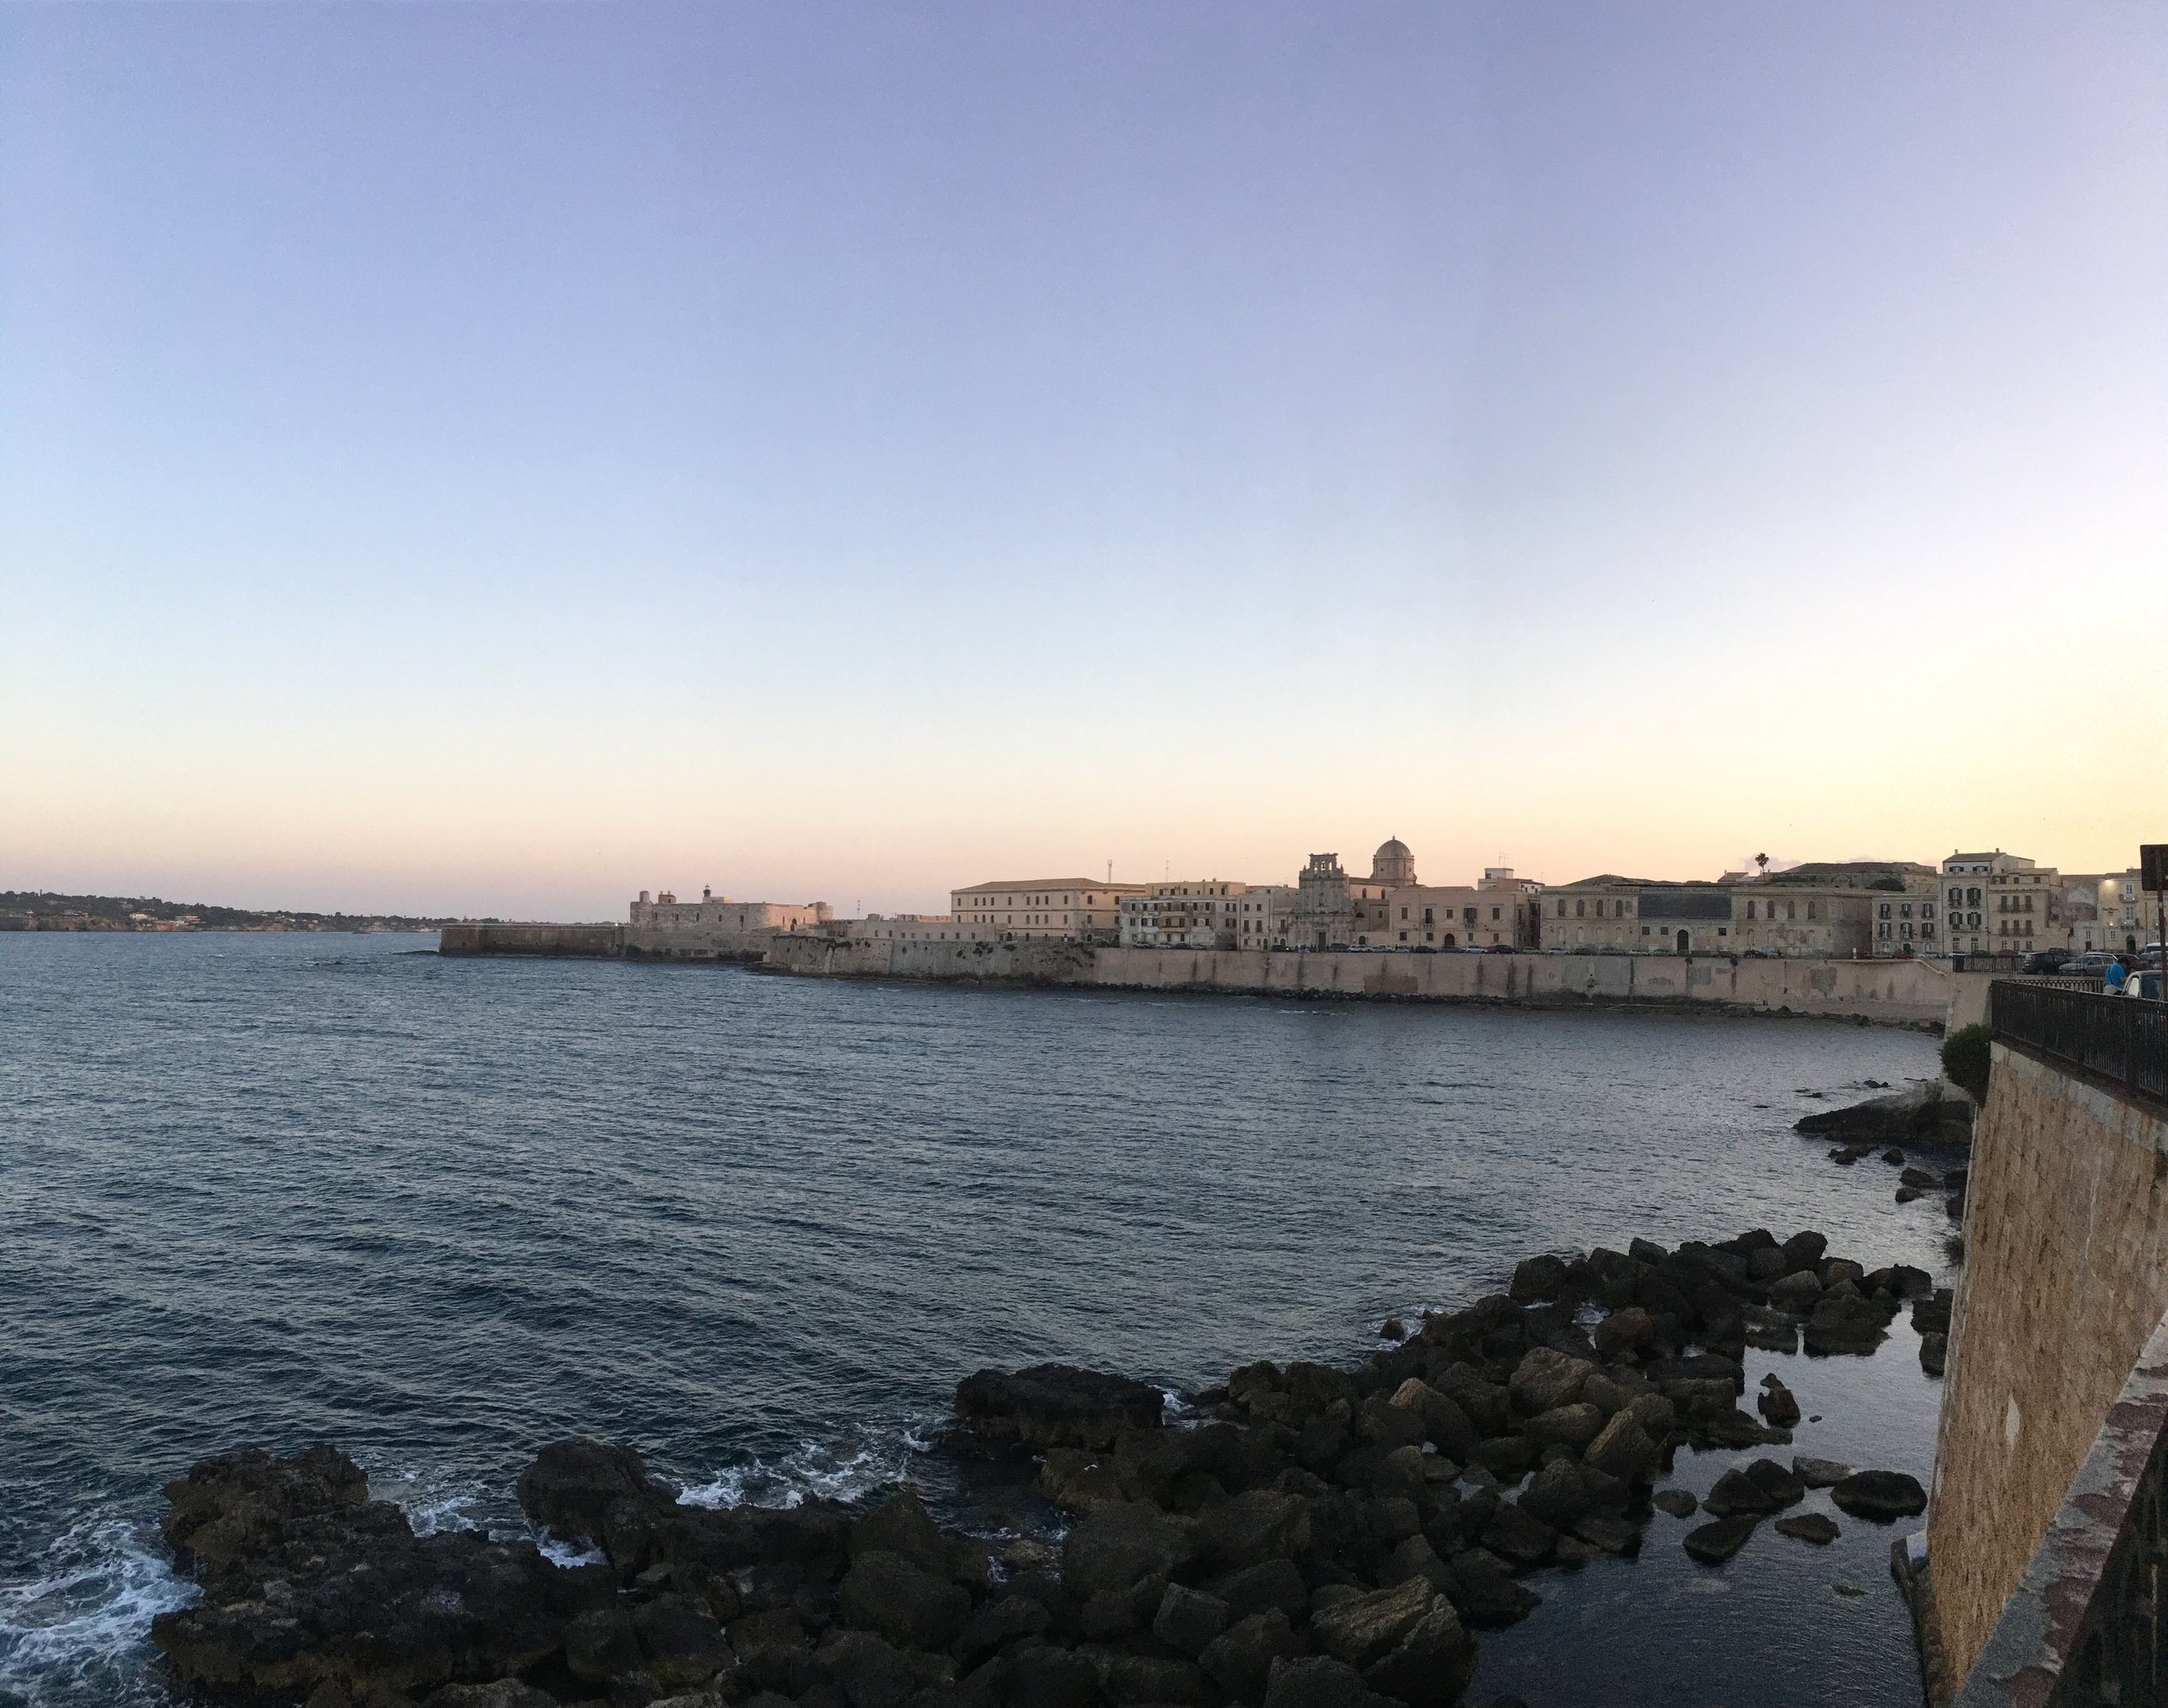 View by Alevante at sunset